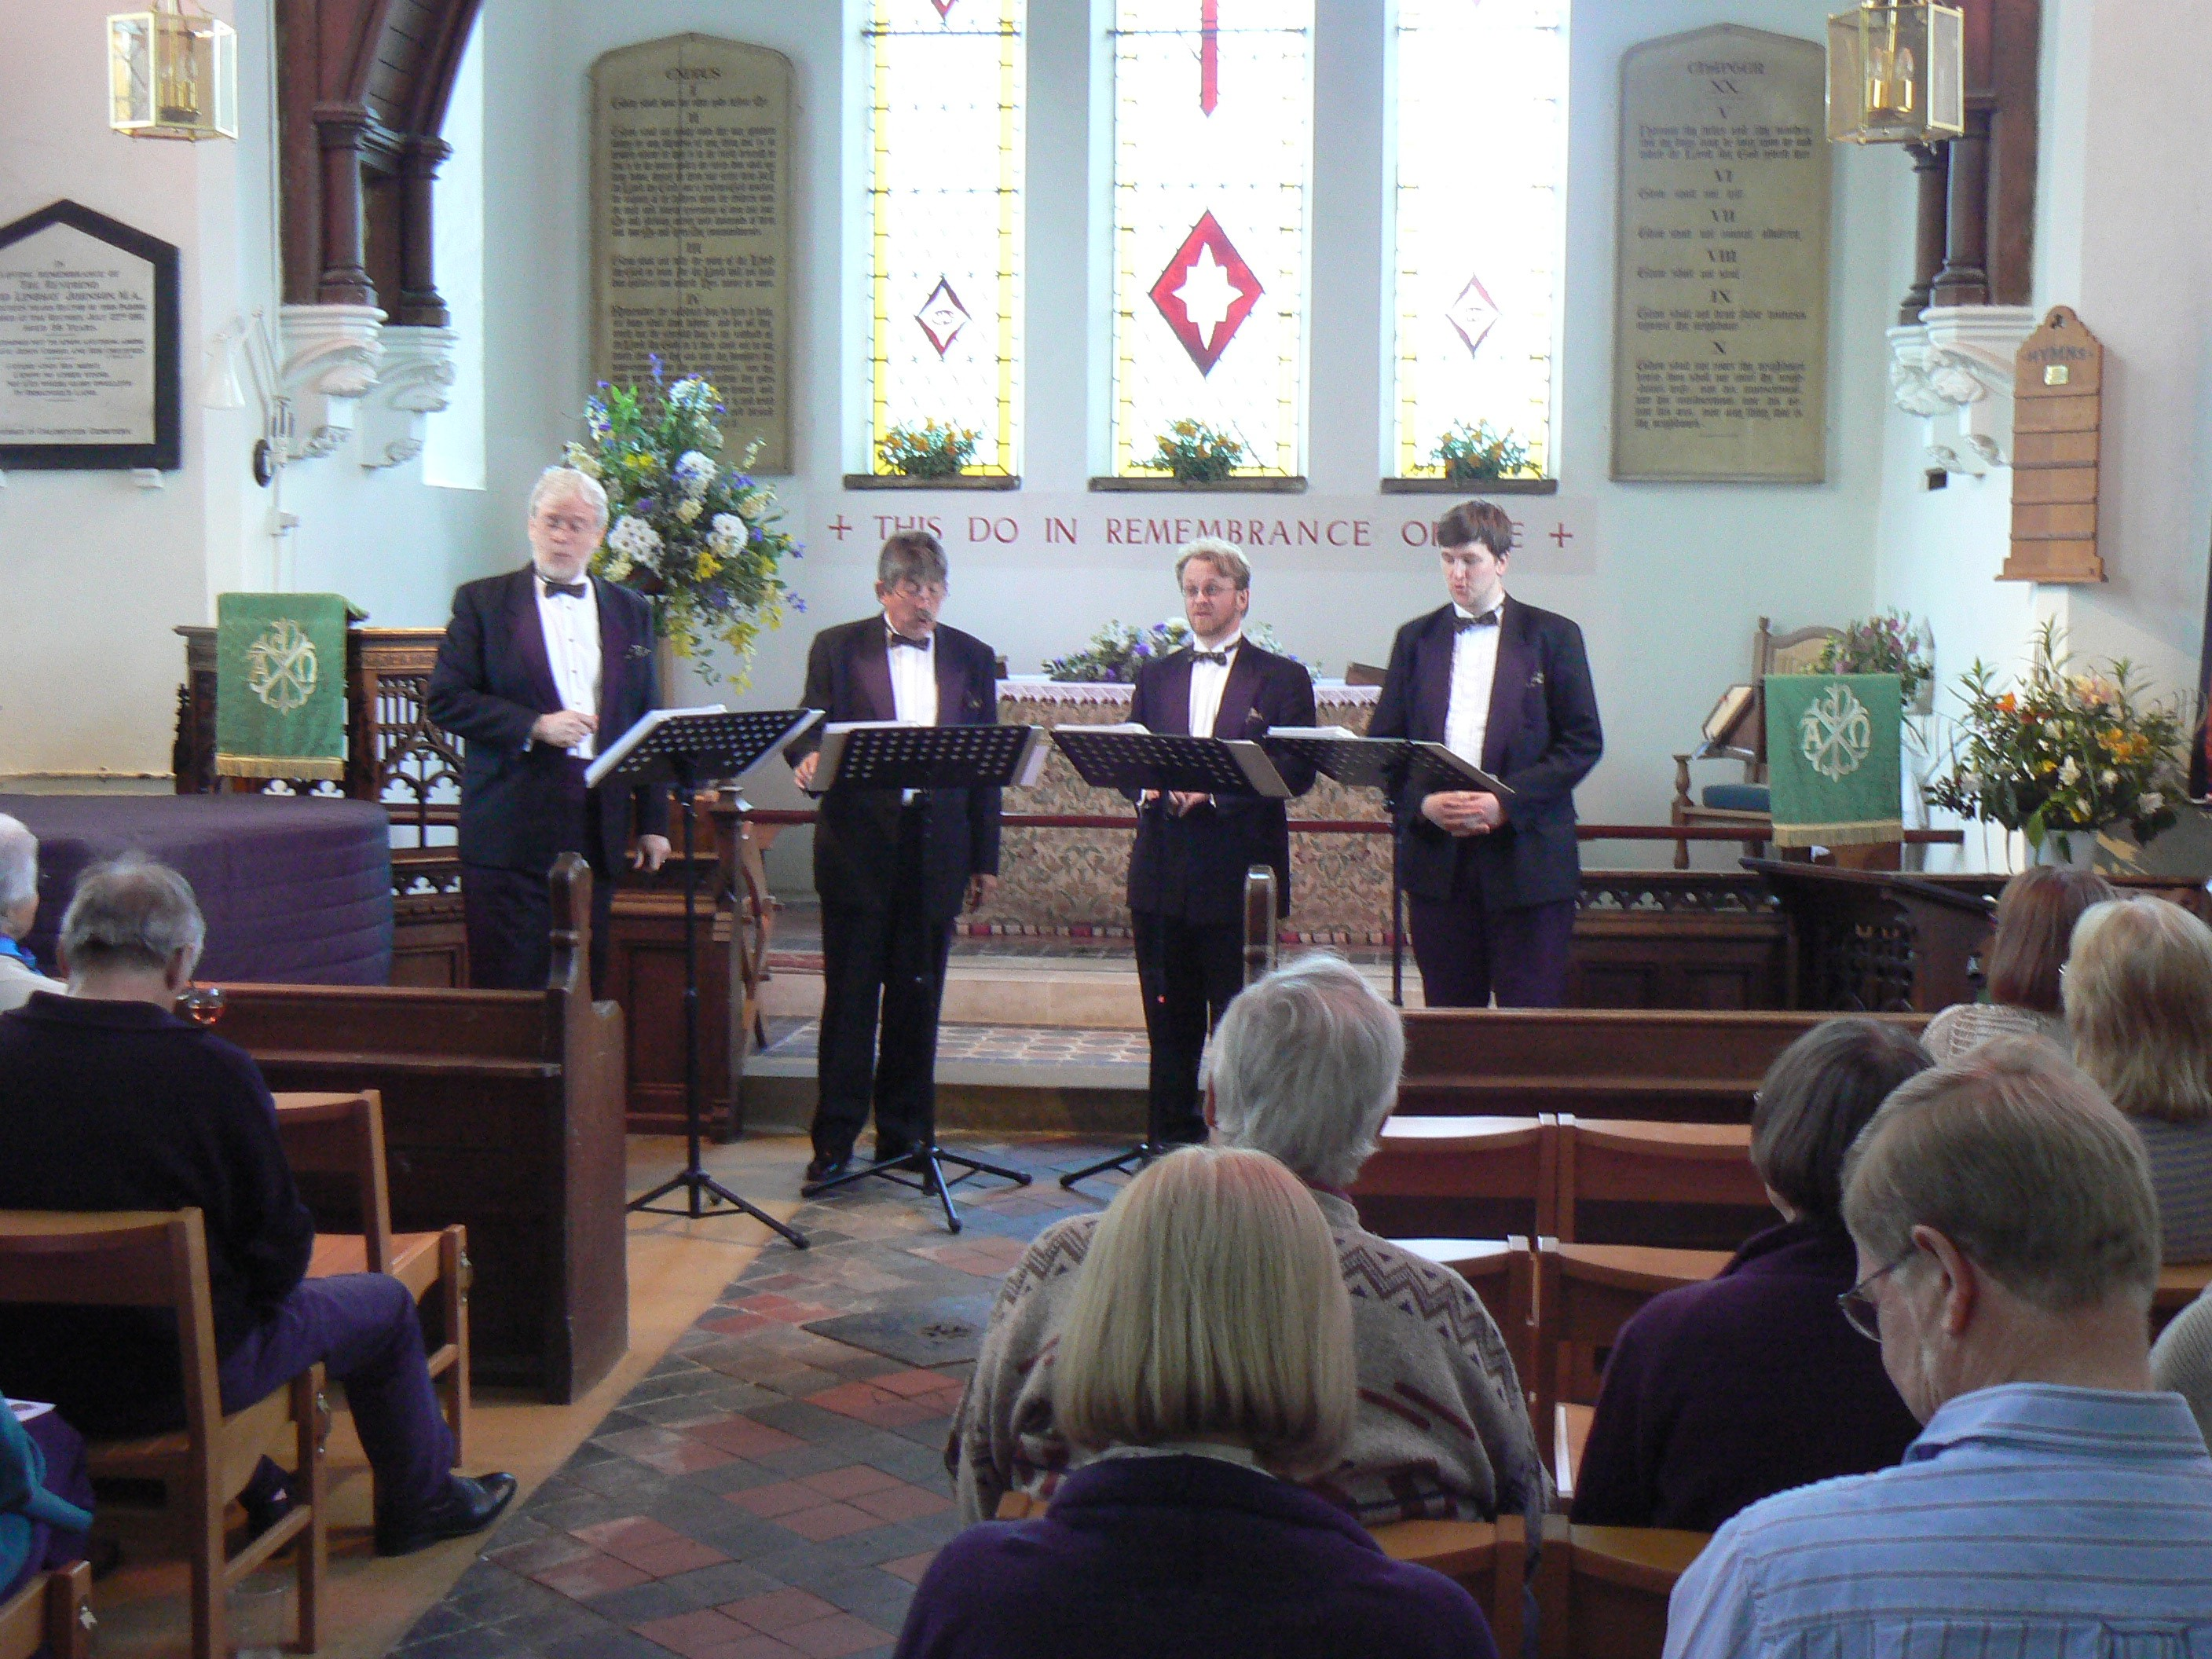 song cycle in peldon church